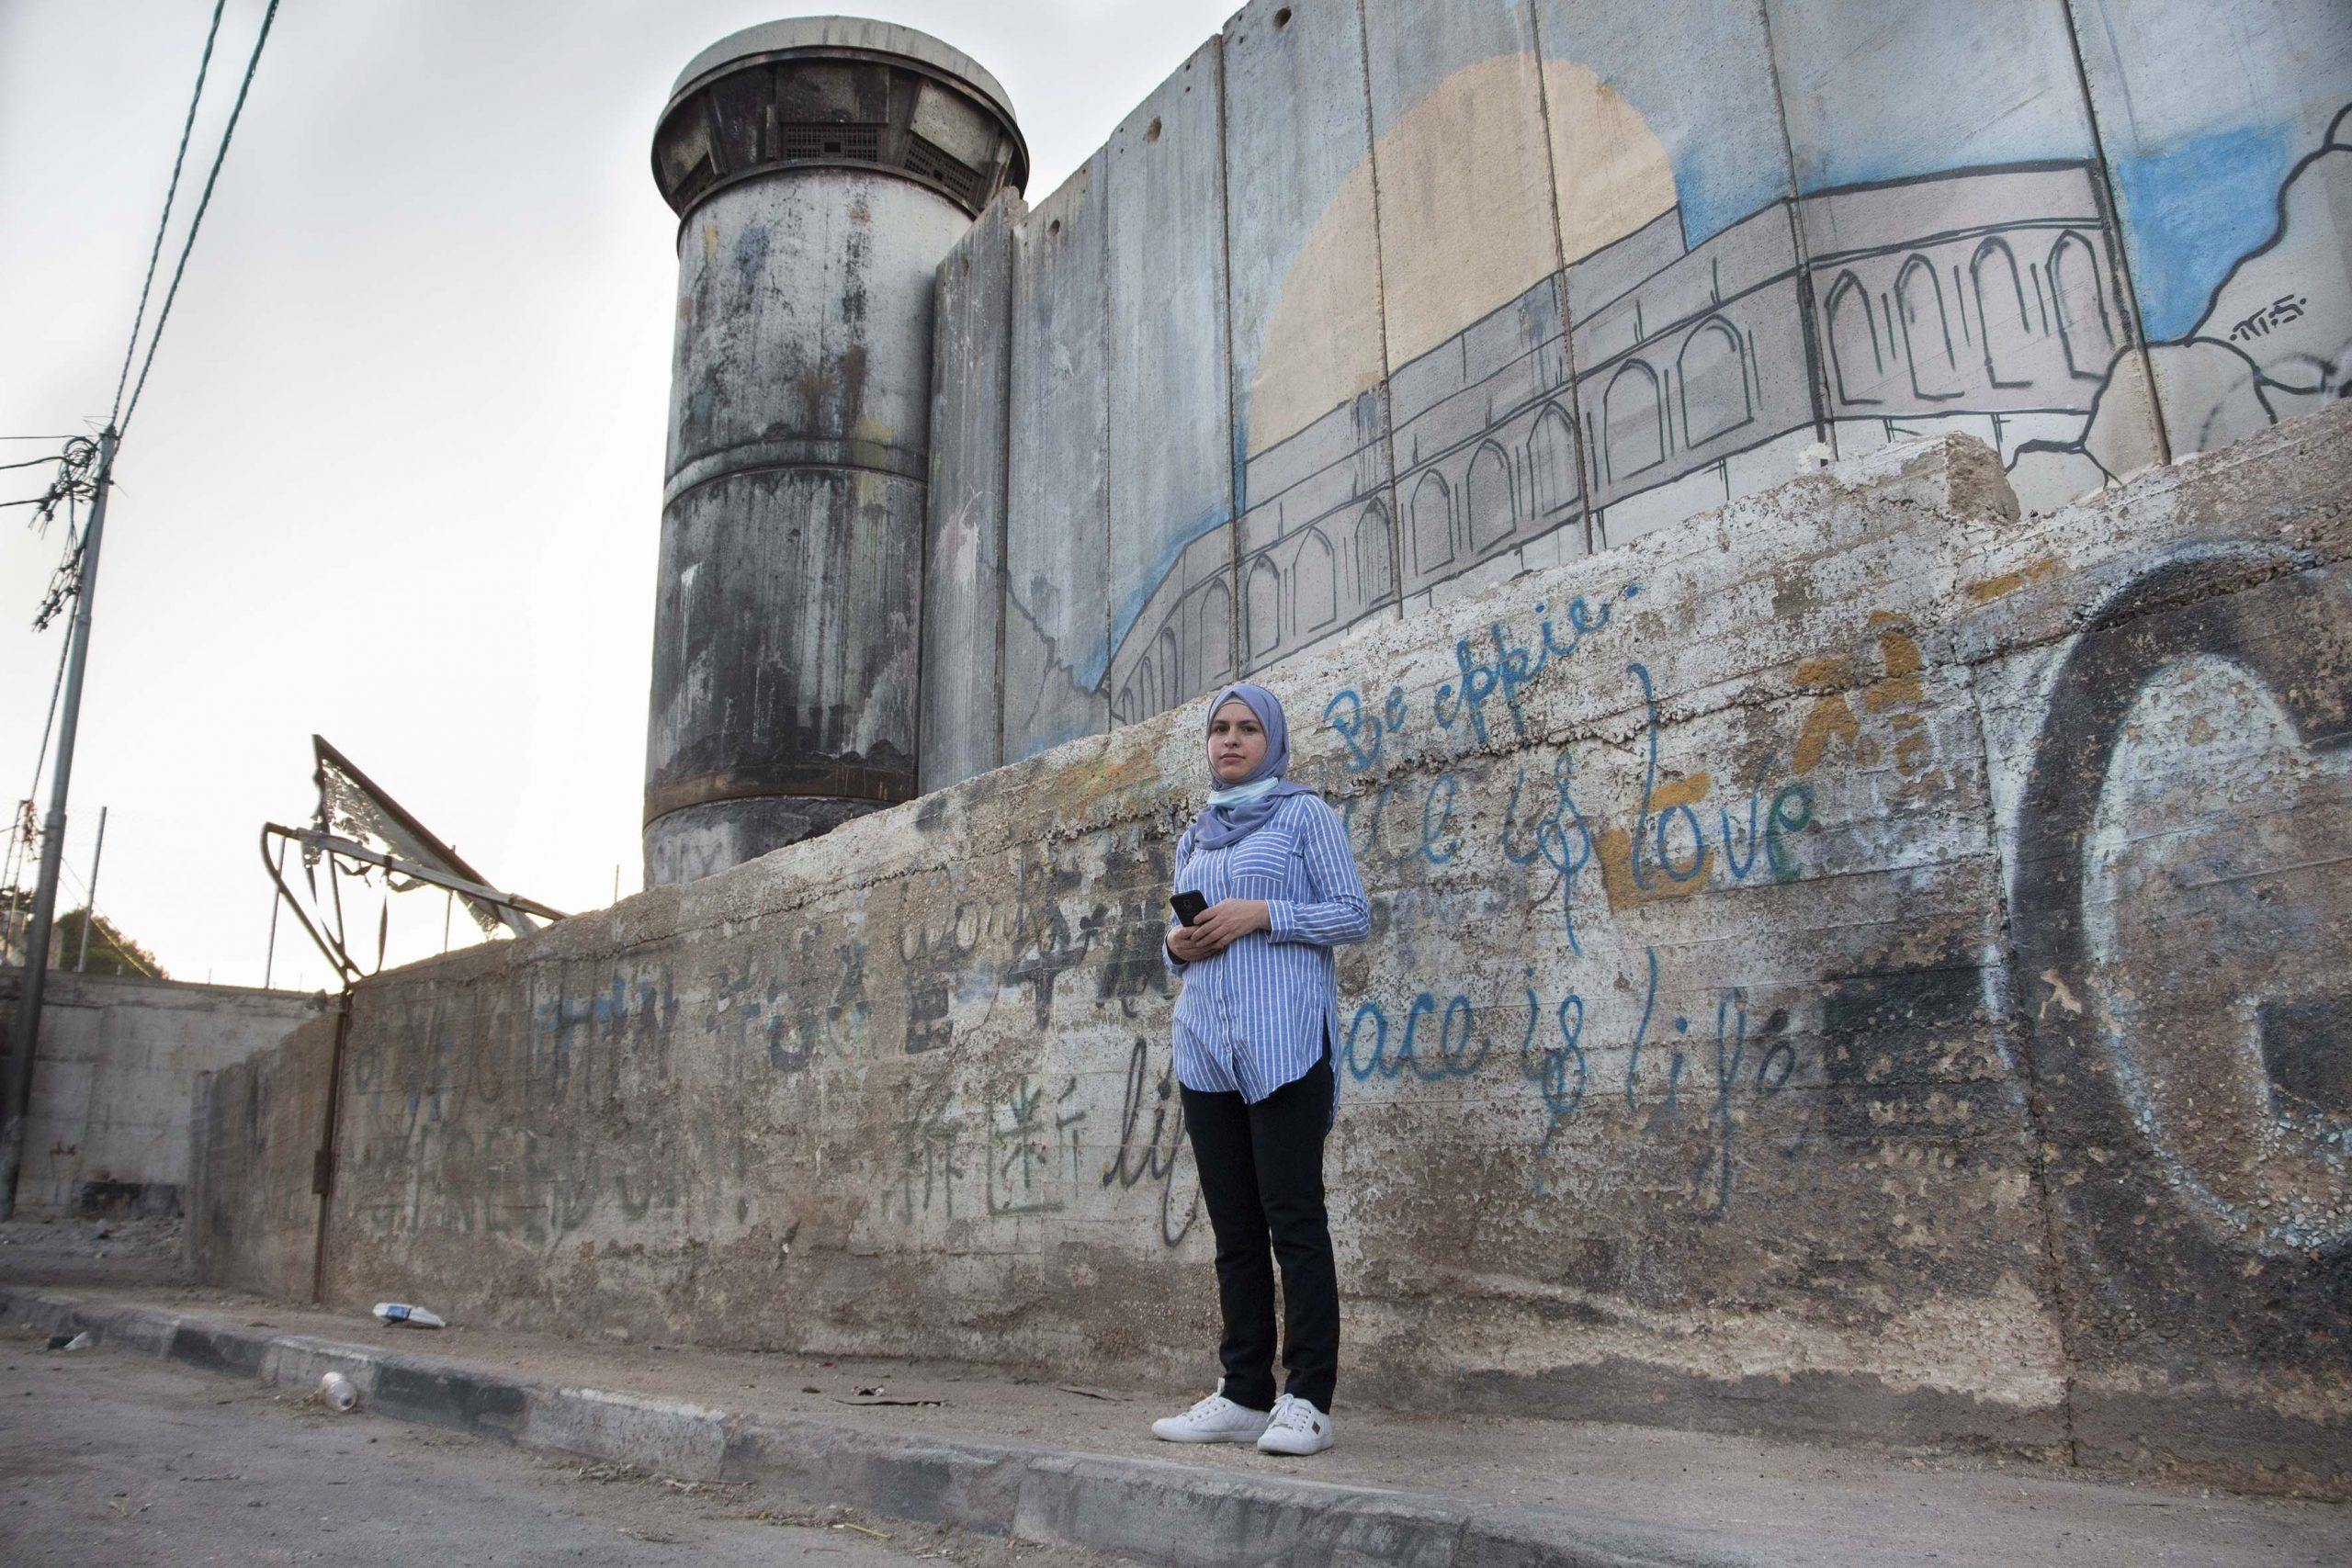 19 July 2020: Iltizam Morrar stands in front of the Israeli military watchtower and giant 'apartheid wall'. Israel has been building the barrier through the West Bank since 2002 to annex the land and divide the region into dozens of disconnected areas. (Photograph by Reem Jarrar)